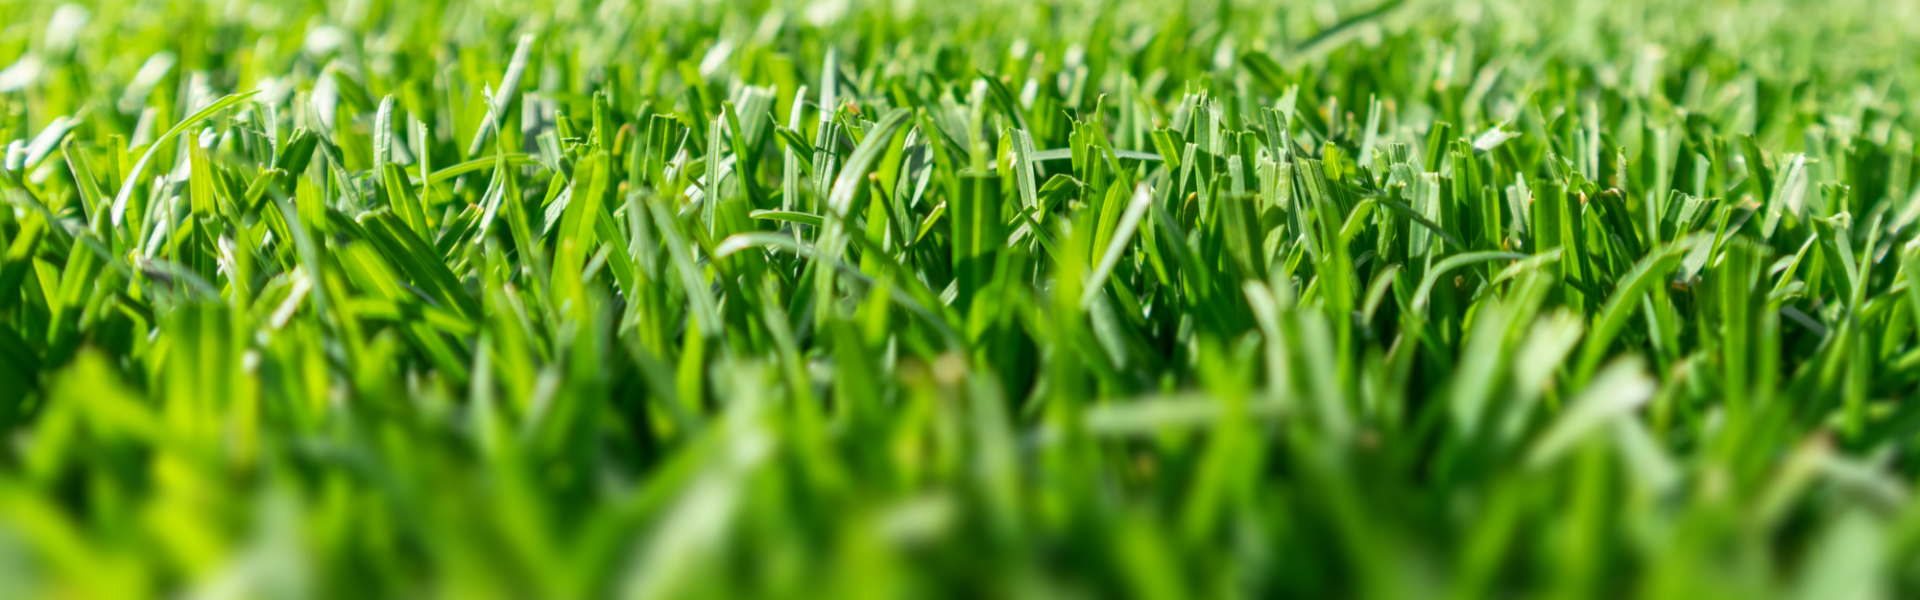 turfgrass in an athletic field